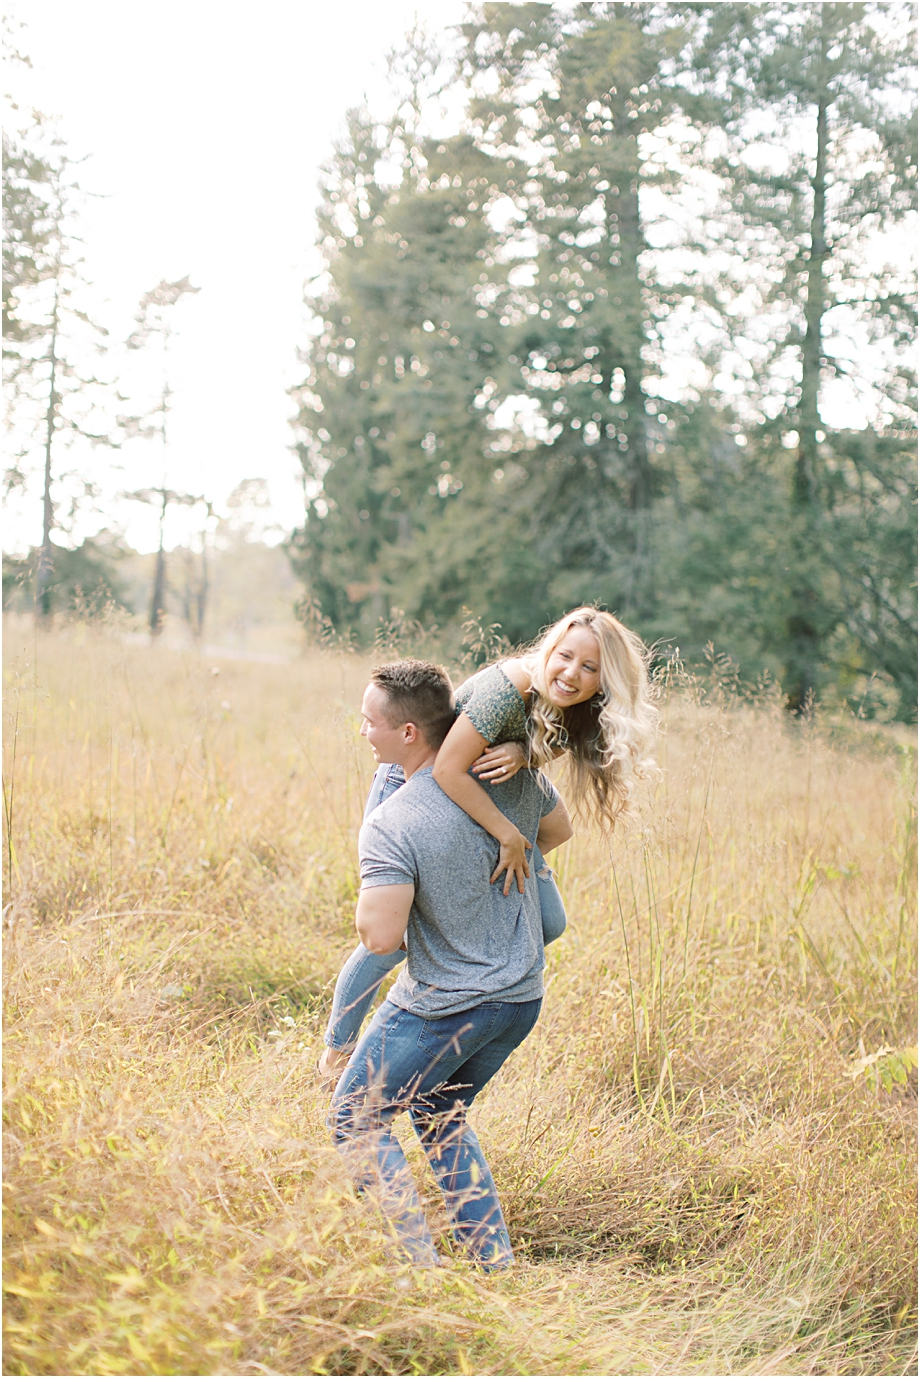 Valley Forge Engagement Photography   Sarah Canning Photography